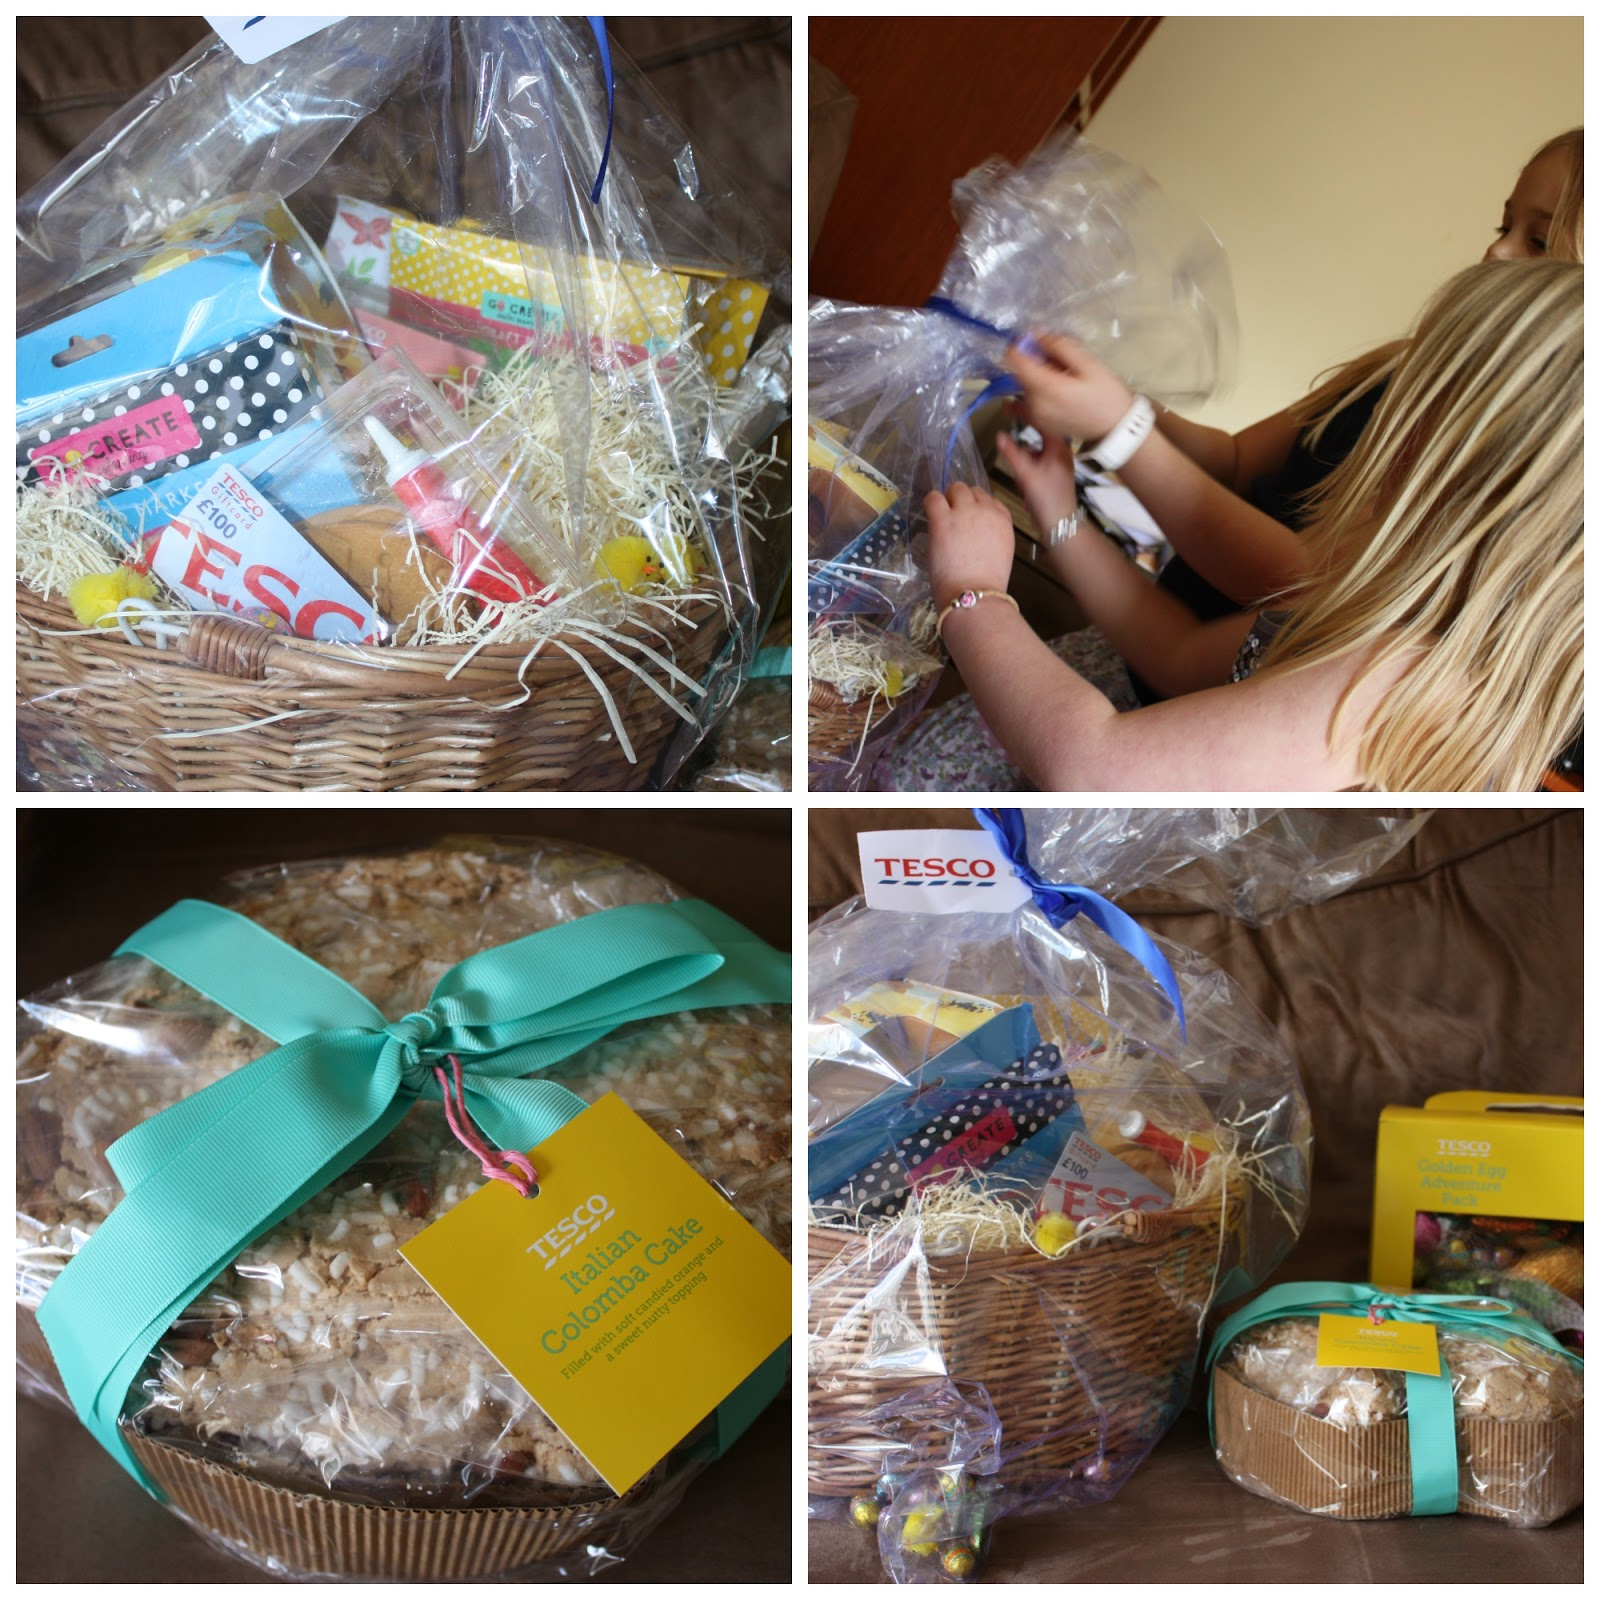 Mellow mummy tescoeaster egg hunts easter crafts and a hamper were preparing for a nice family weekend for easter with lots of treats but also a traditional lamb roast and if the weather is kind to us a barbecue negle Choice Image